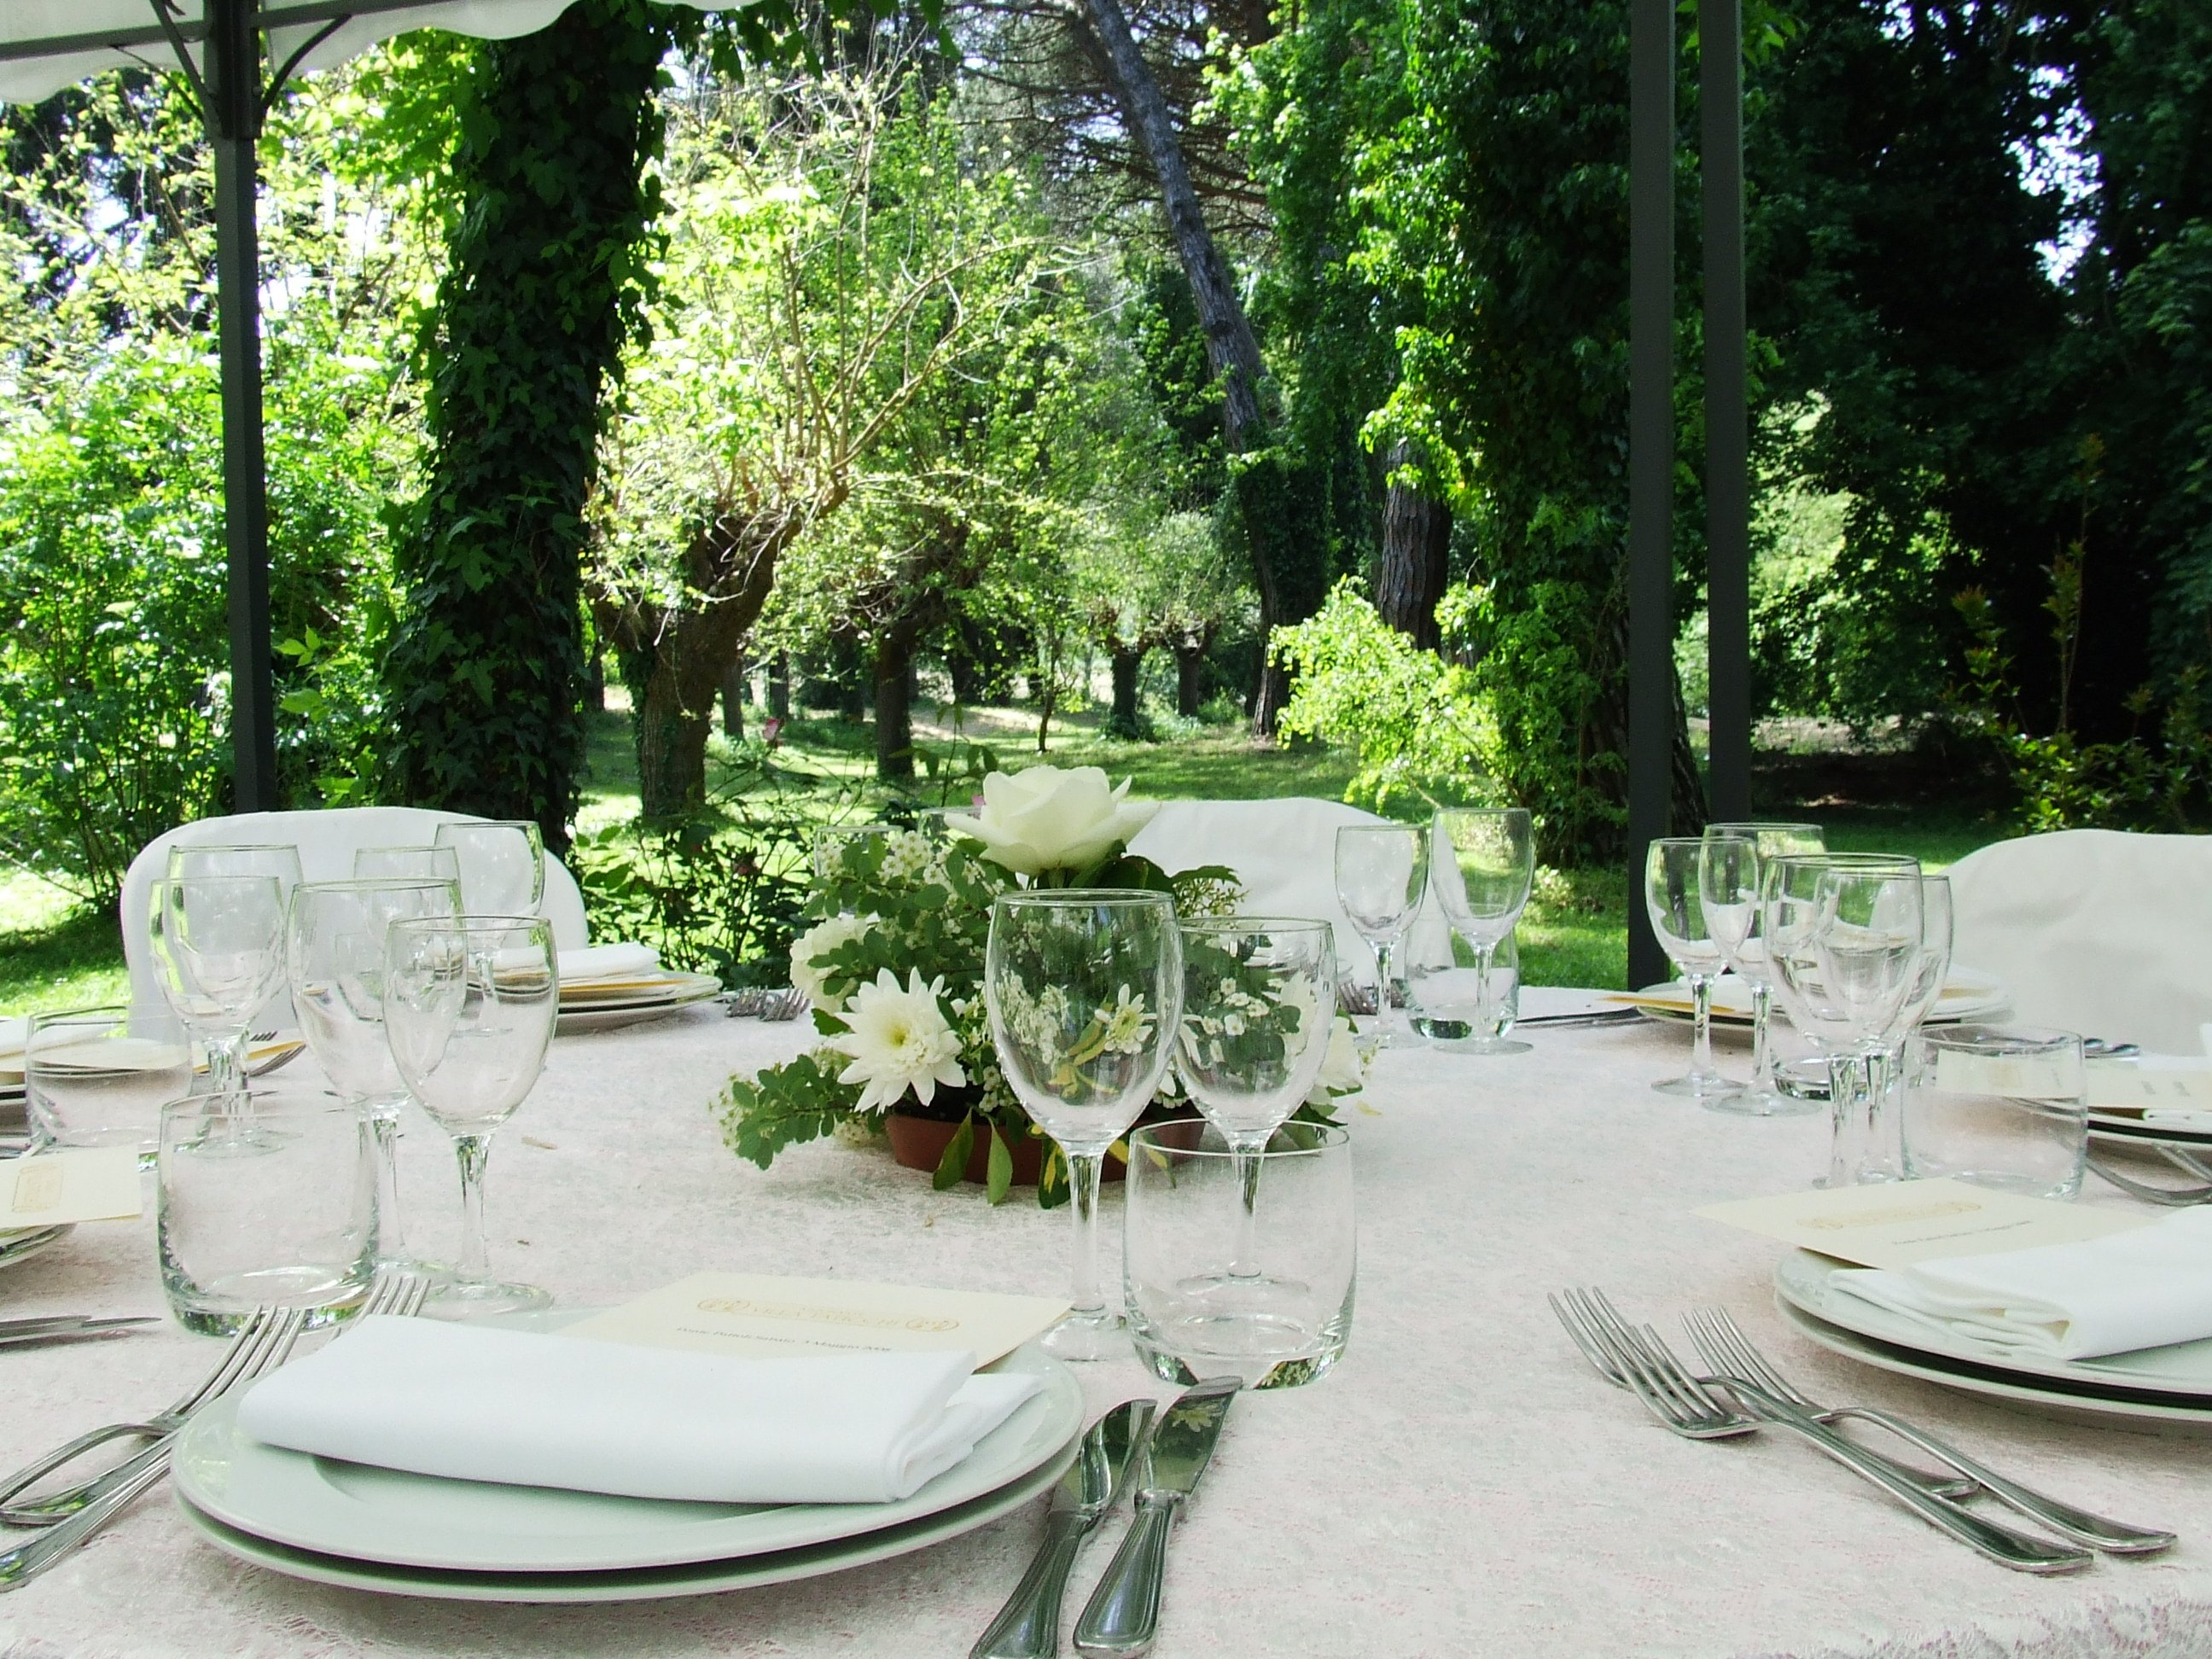 Matrimonio Country Chic Novara : Matrimonio country chic a villa taticchi umbria online